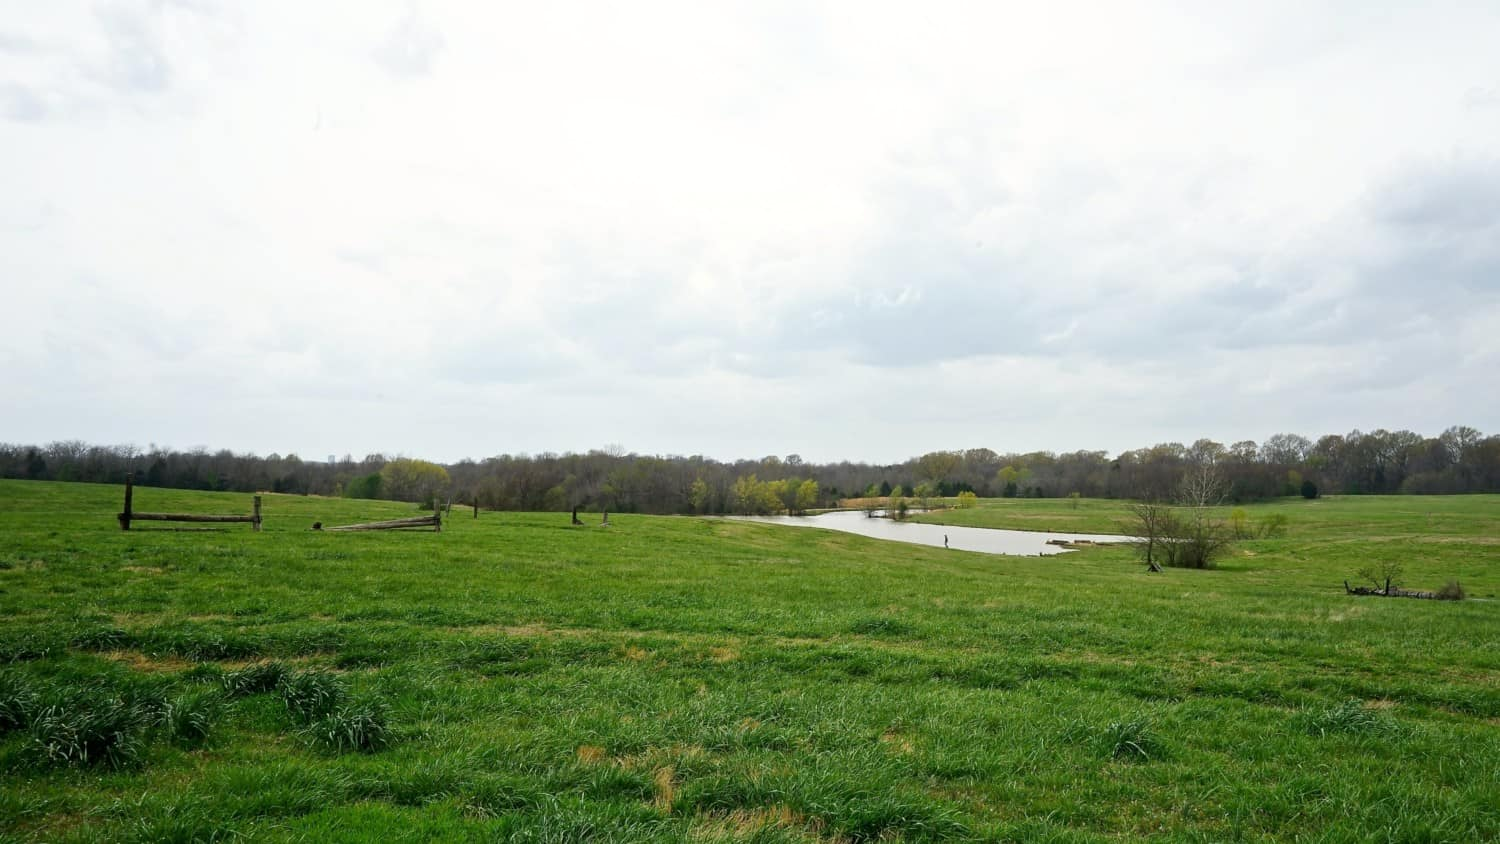 Tennessee's Top Pet Friendly Attraction: Shelby Farms Park | GoPetFriendly.com